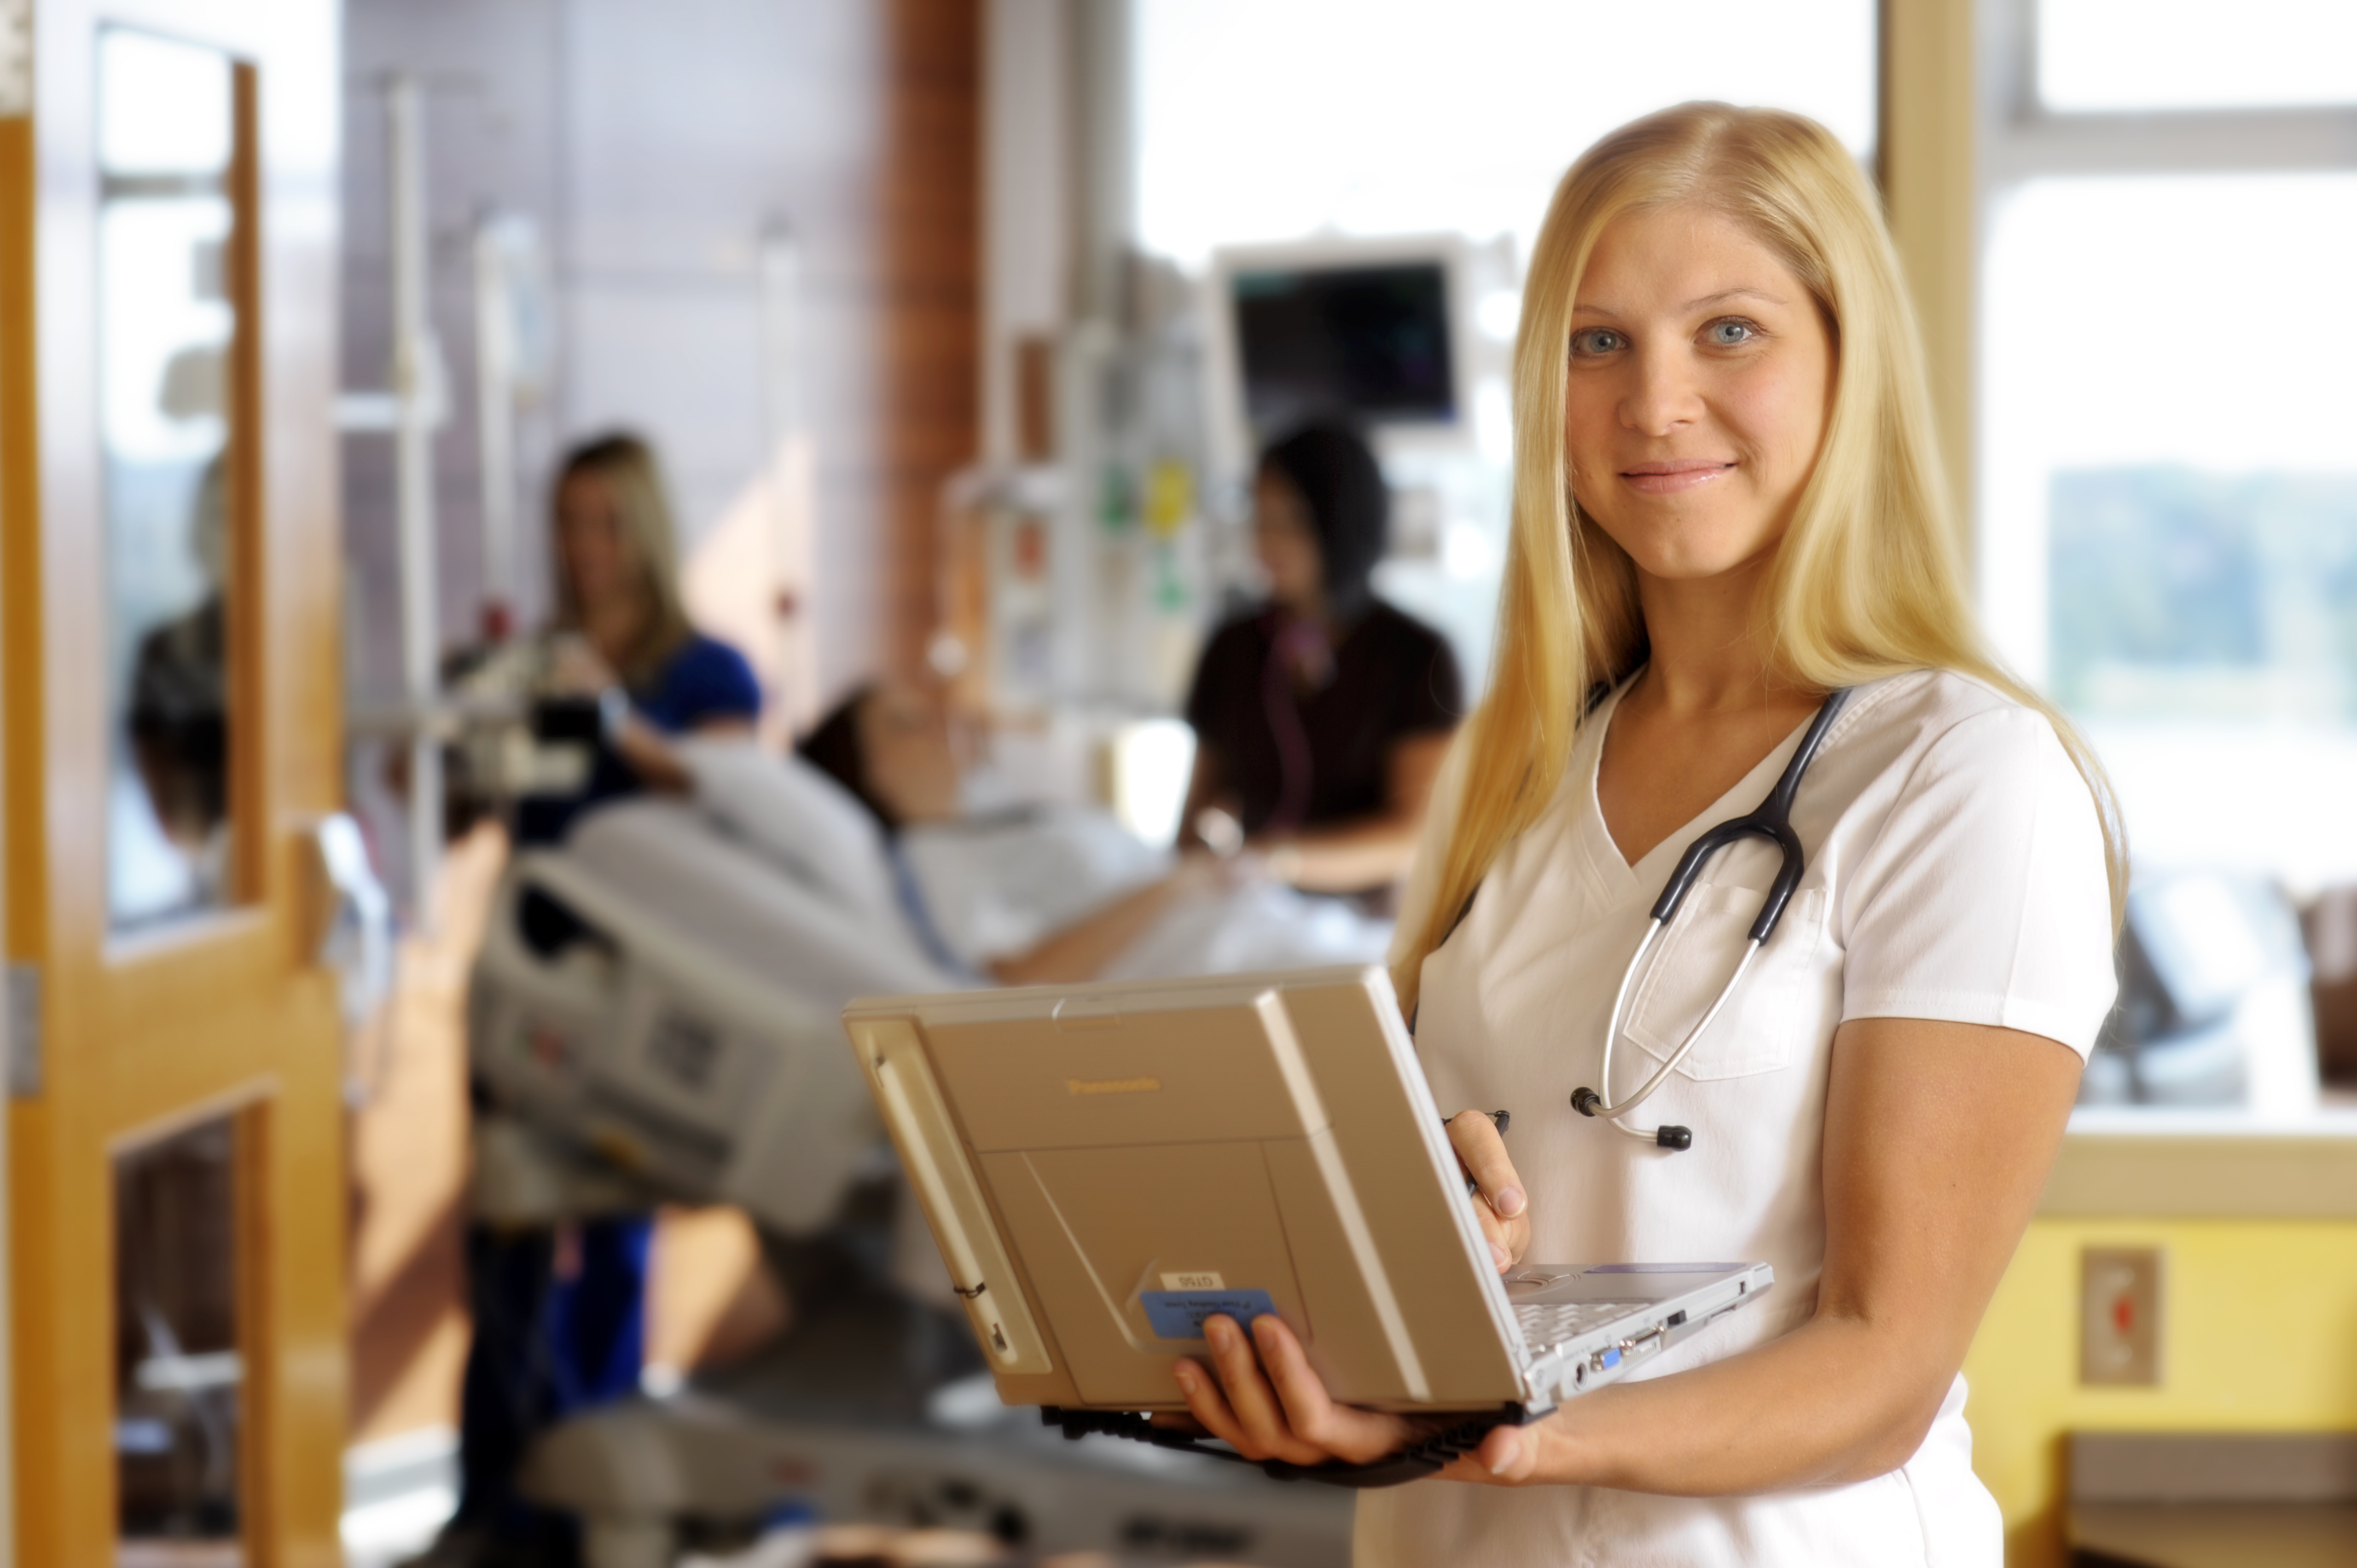 Florida Hospital Graduate Nurse Careers Apply Now